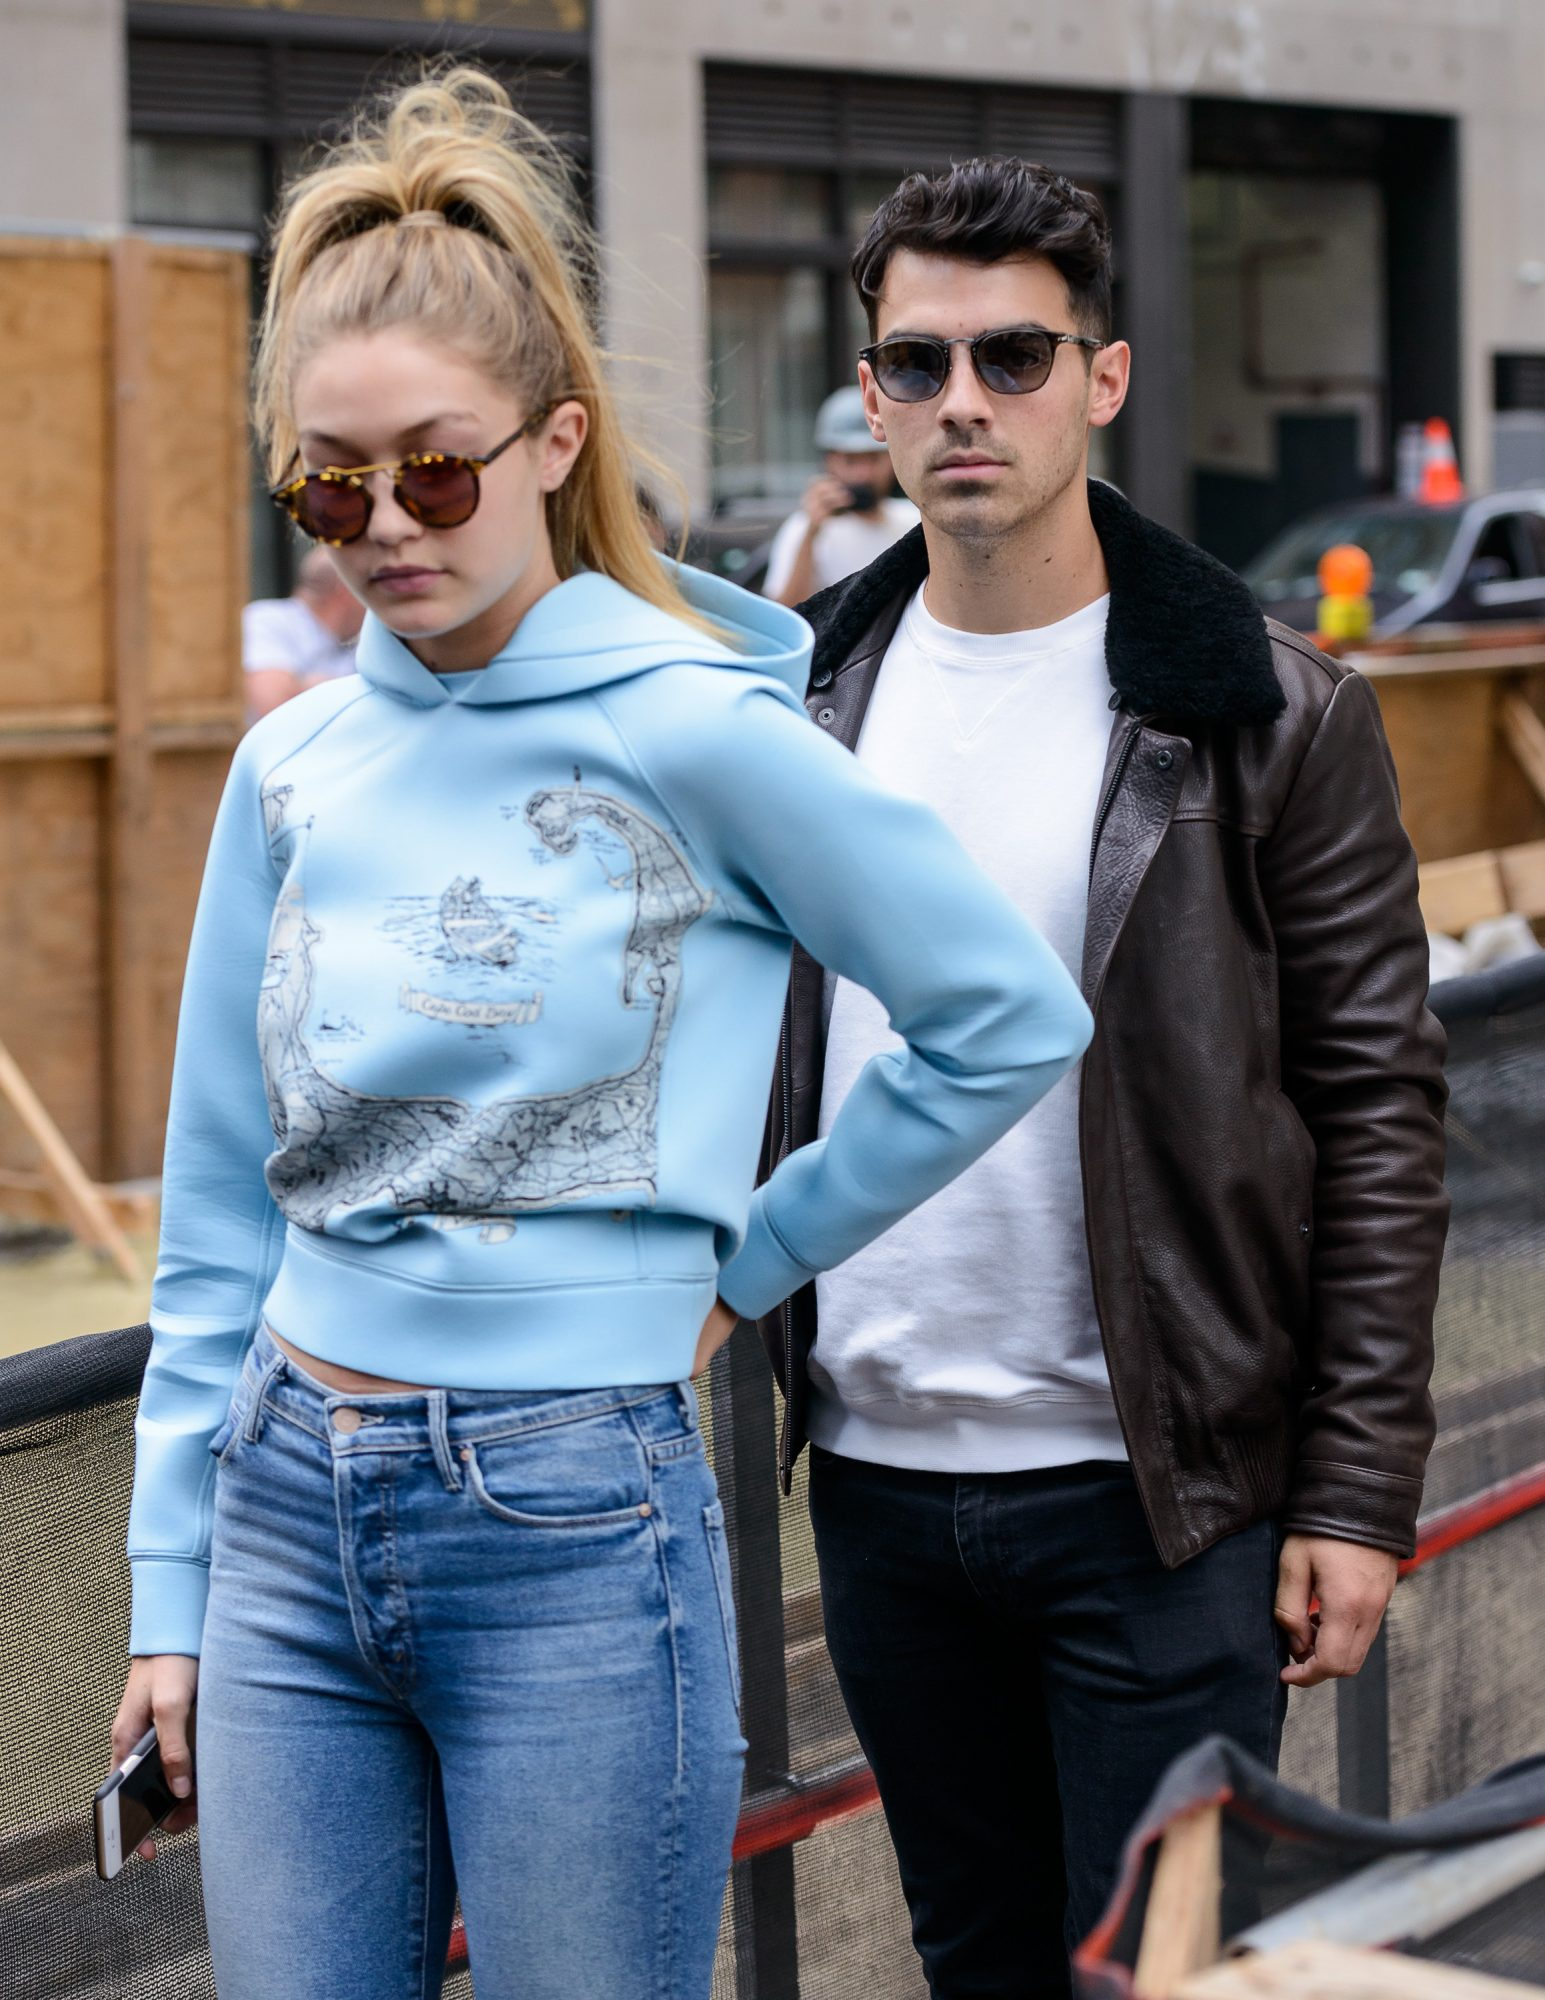 Sophie Turner & Joe Jonas Meet Up With Friends In Paris